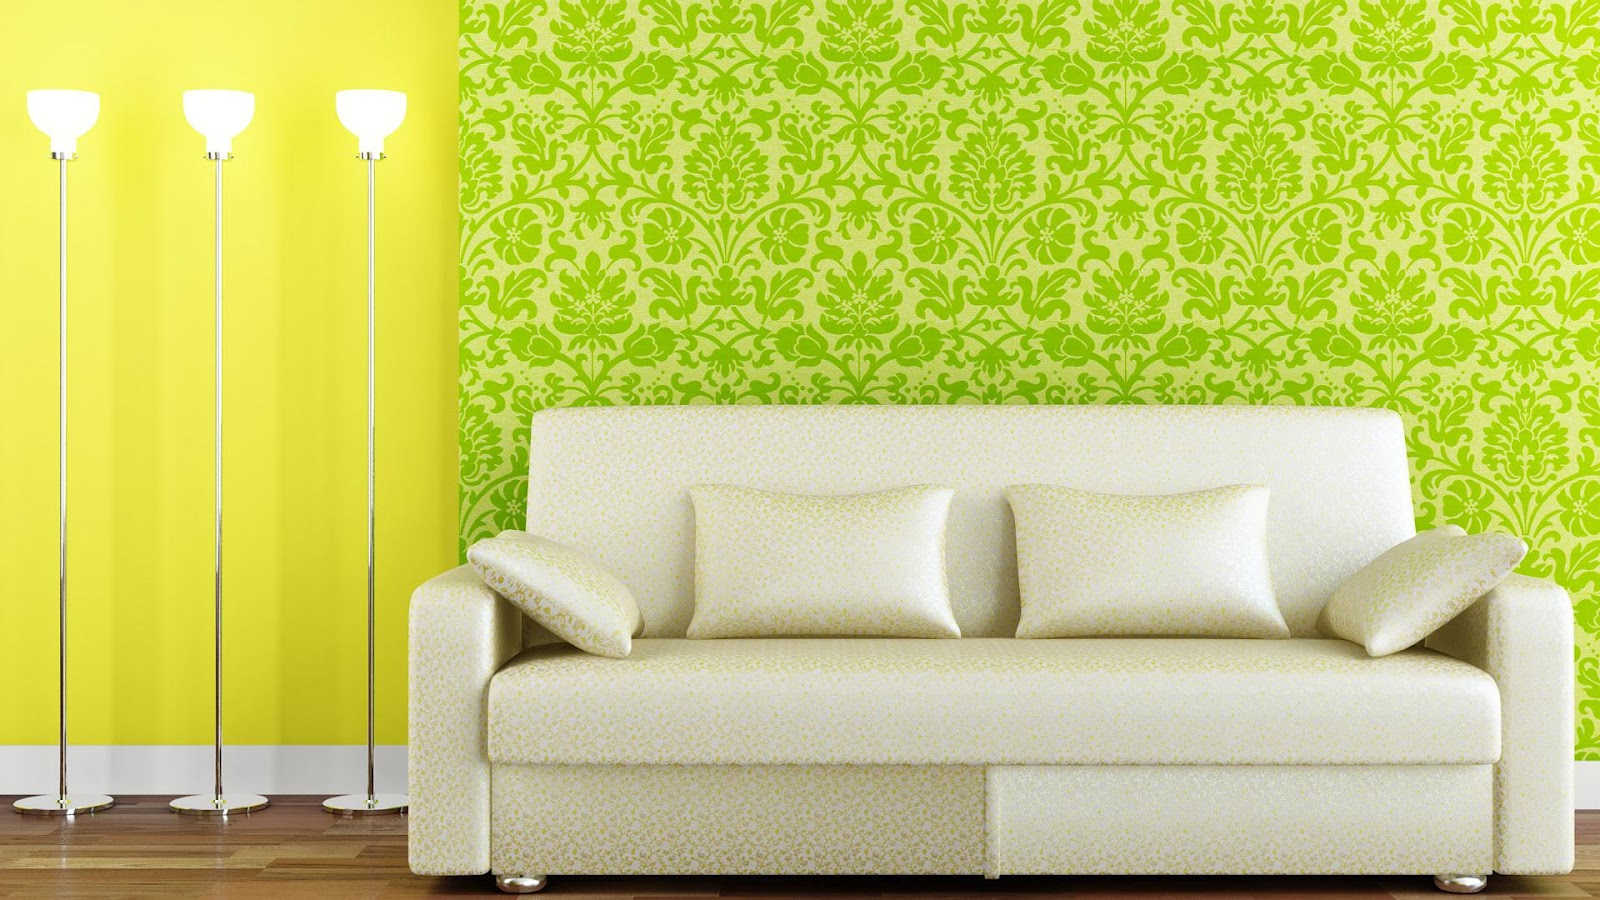 Beauty Green And Yellow Interior Wallpaper Design Wallpaper